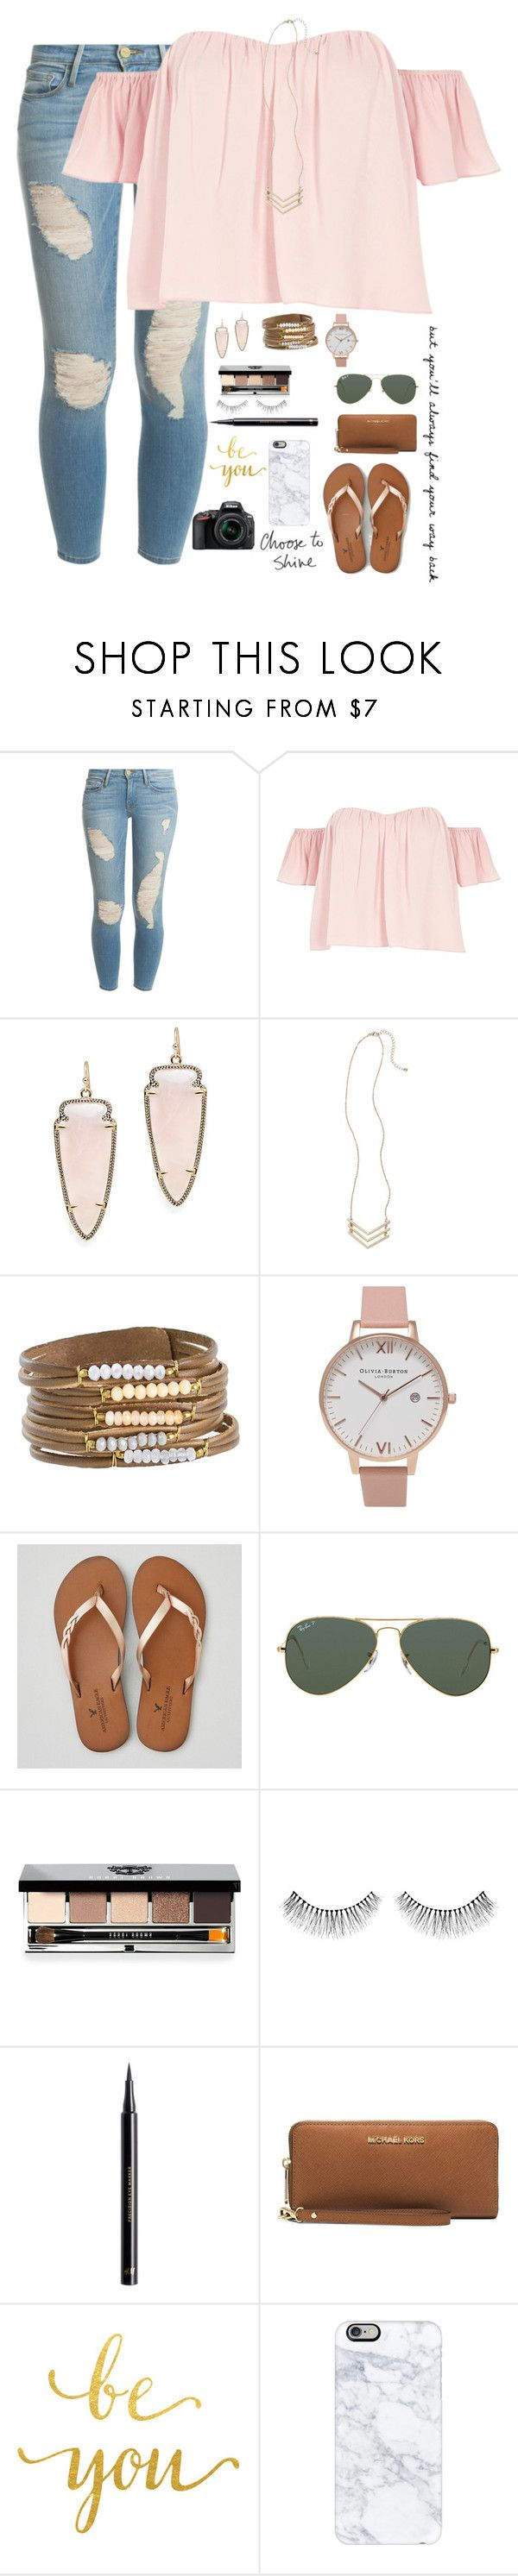 """""""•Faith is the only thing Stronger than Fear•"""" by mgpayne10 ❤ liked on Polyvore featuring Frame, River Island, Kendra Scott, Girly, Olivia Burton, American Eagle Outfitters, Ray-Ban, Bobbi Brown Cosmetics, NARS Cosmetics and H&M"""